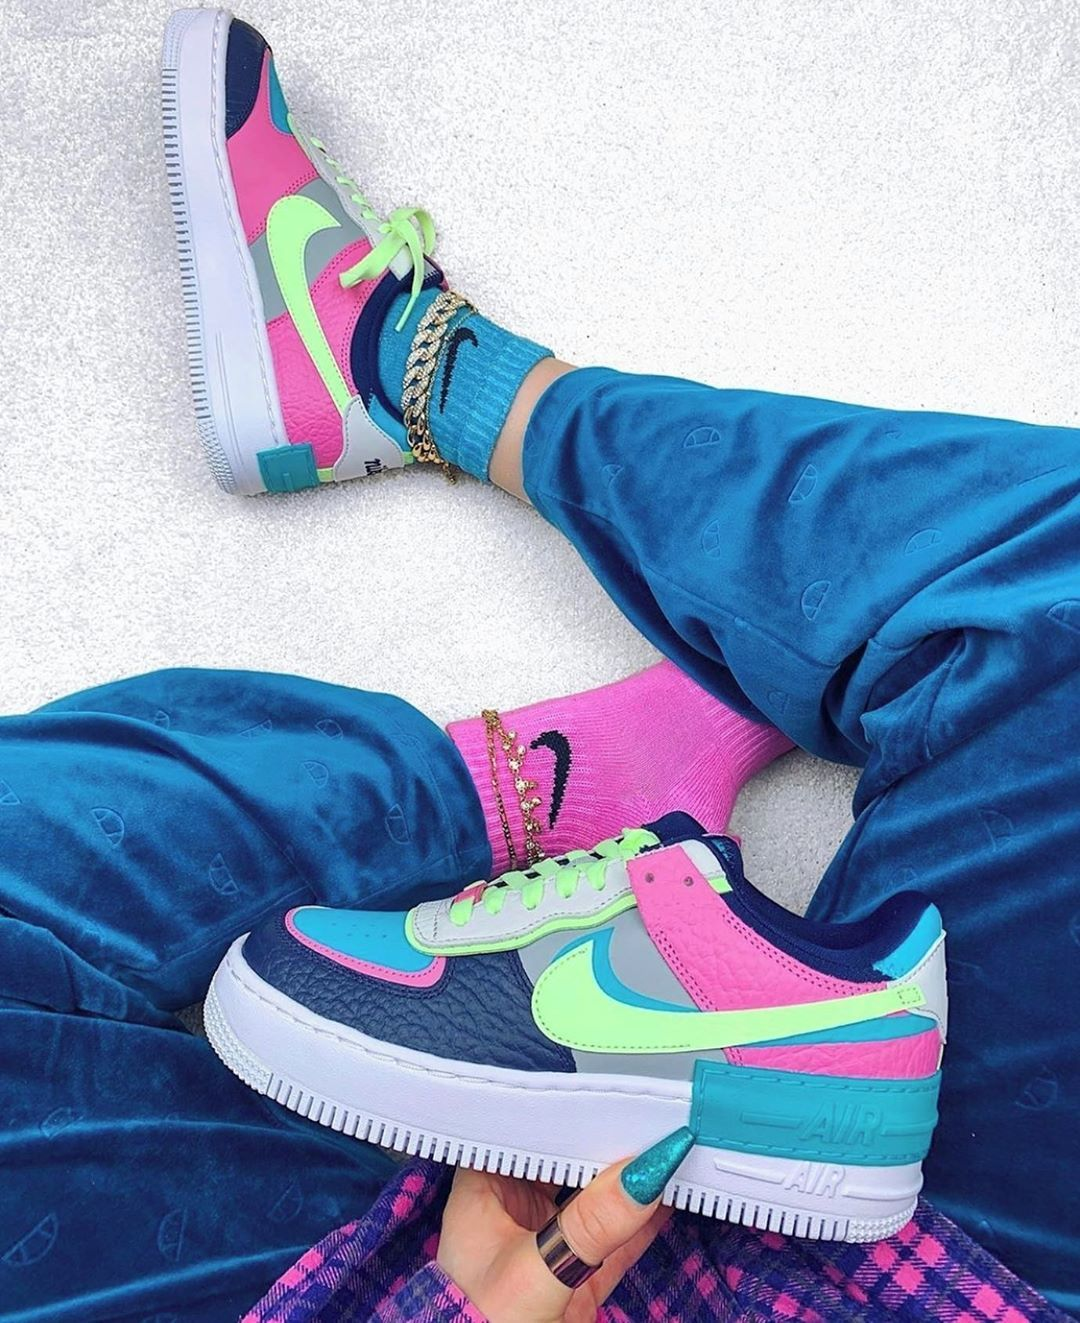 NEW NIKE AIR FORCE 1 SHADOW R3 COLORS